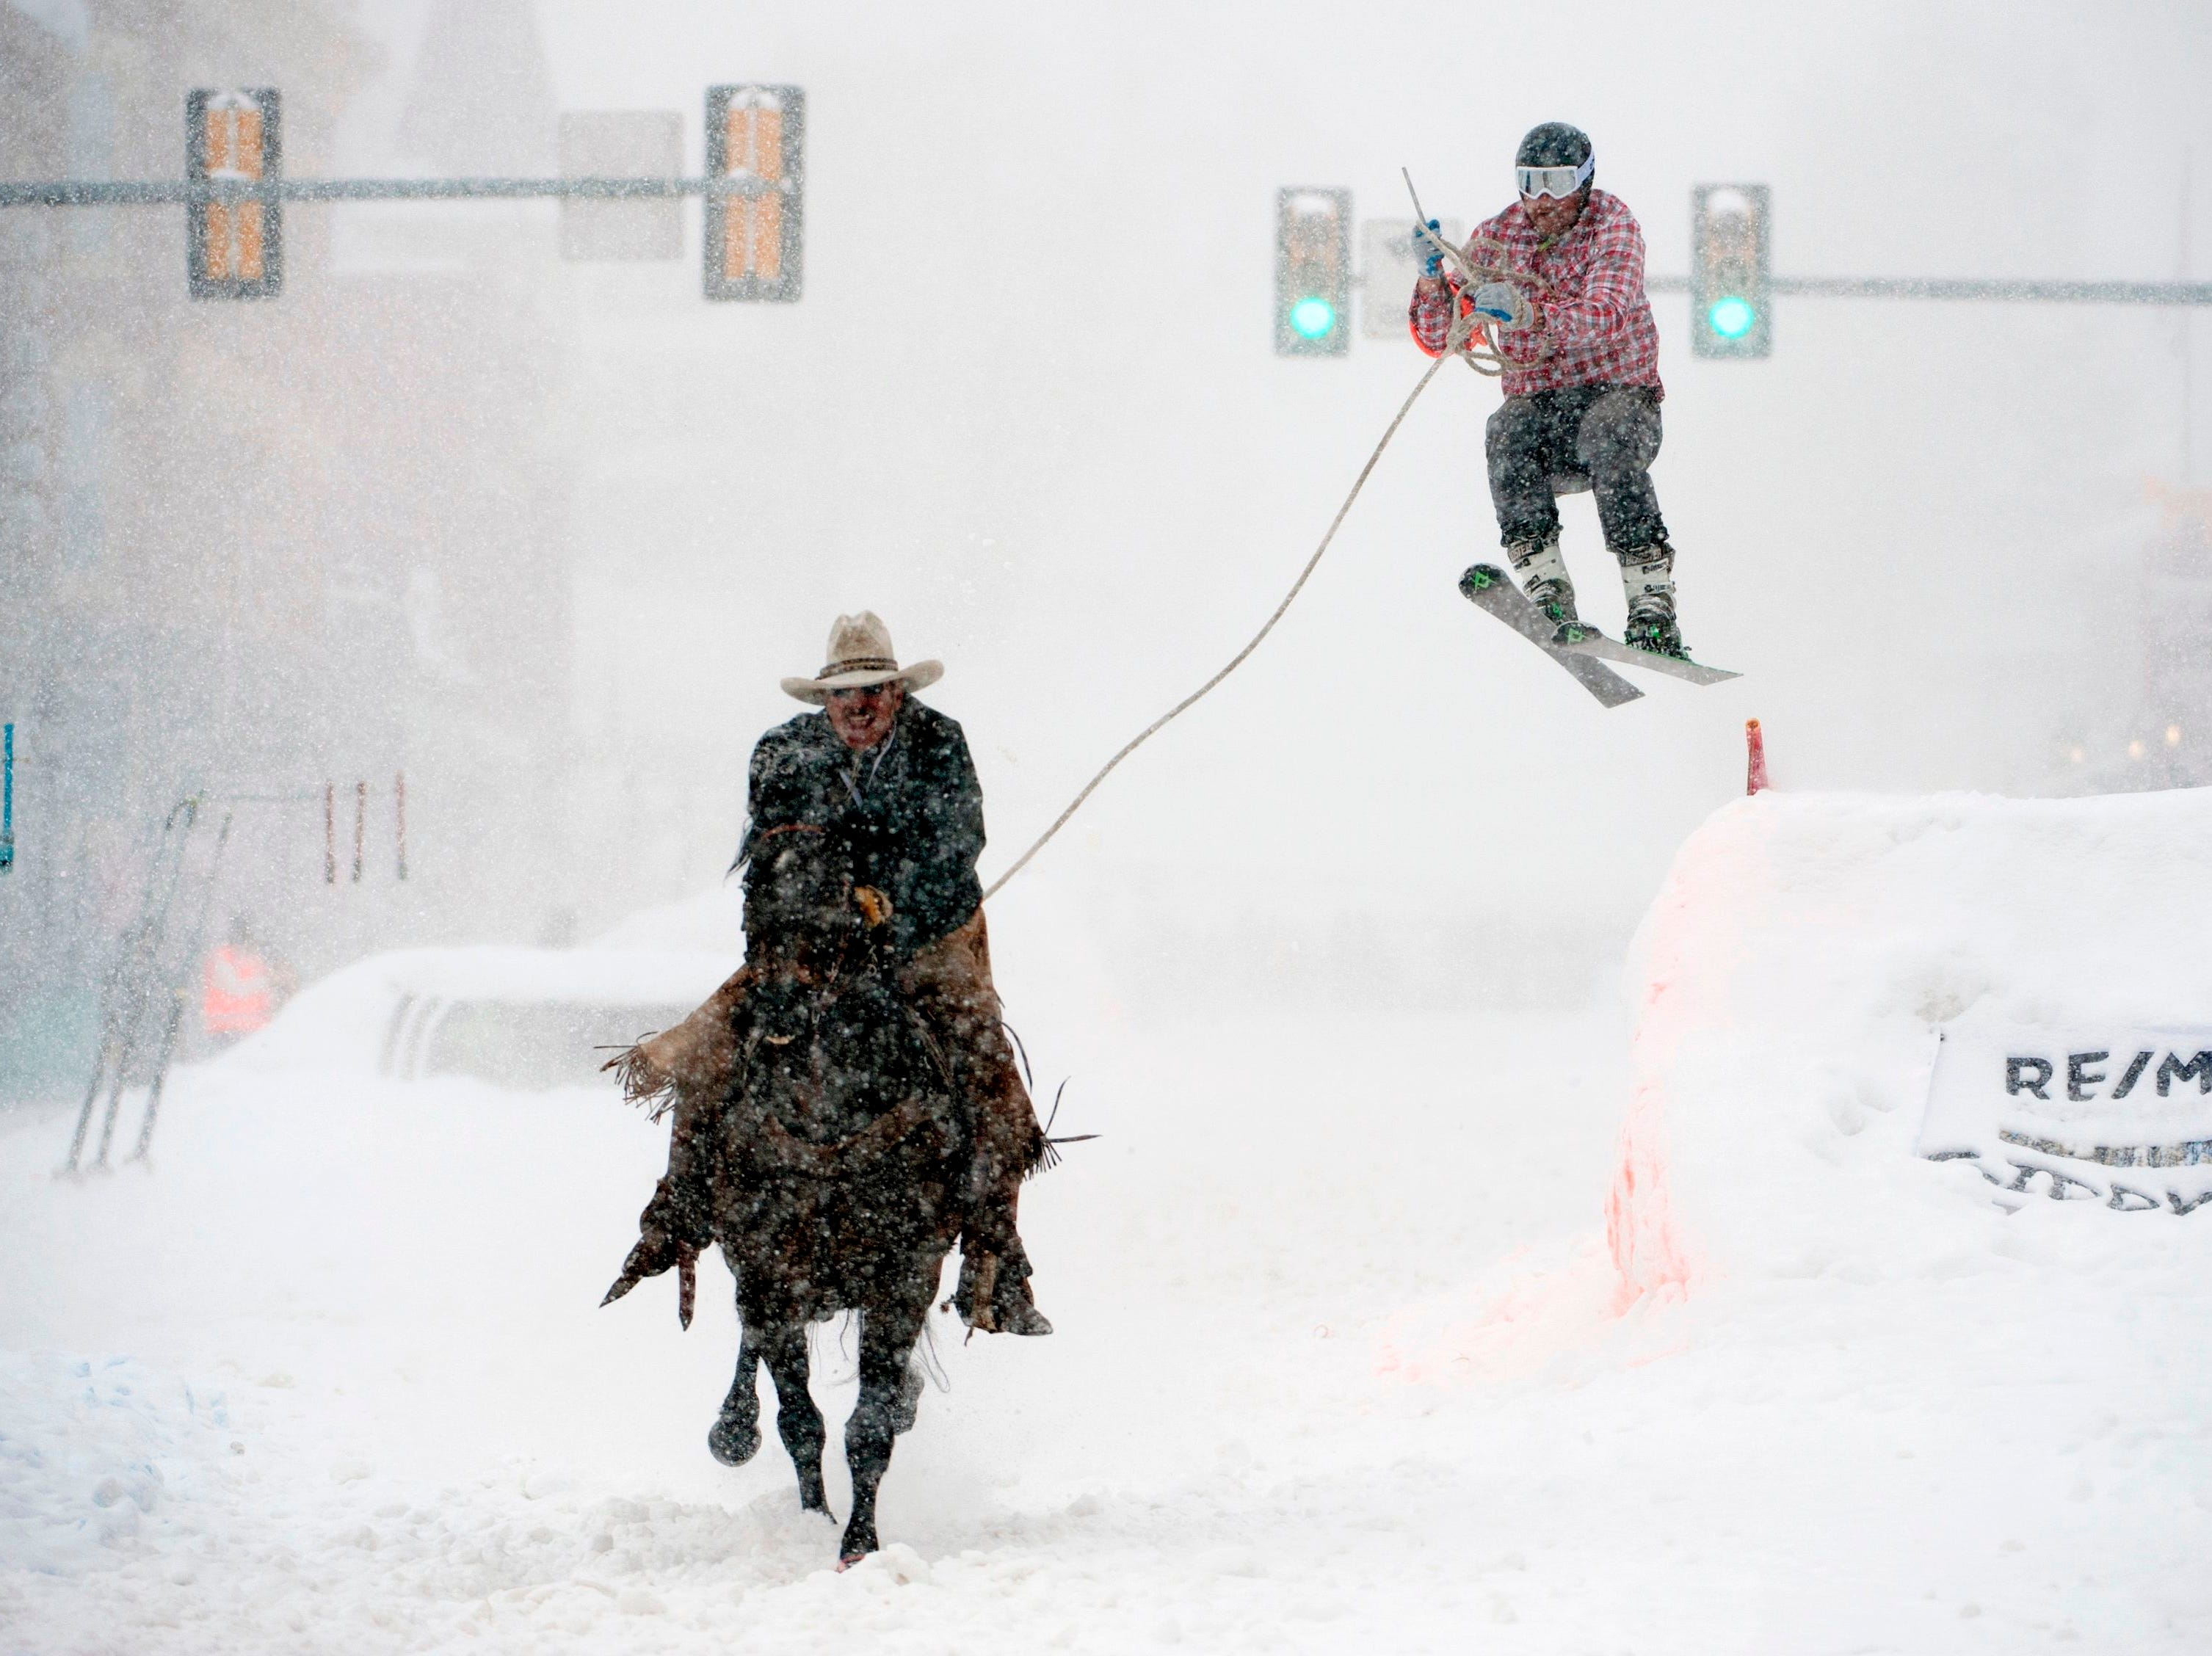 Jeff Dahl races down Harrison Ave. while skier Jason Dahl airs out off the final jump of the Leadville skijoring course during the  annual Leadville Ski Joring & Crystal Carnival Weekend on March 3, 2019 in Leadville, Colo.  Leadville has been hosting skijoring competitions since 1949.